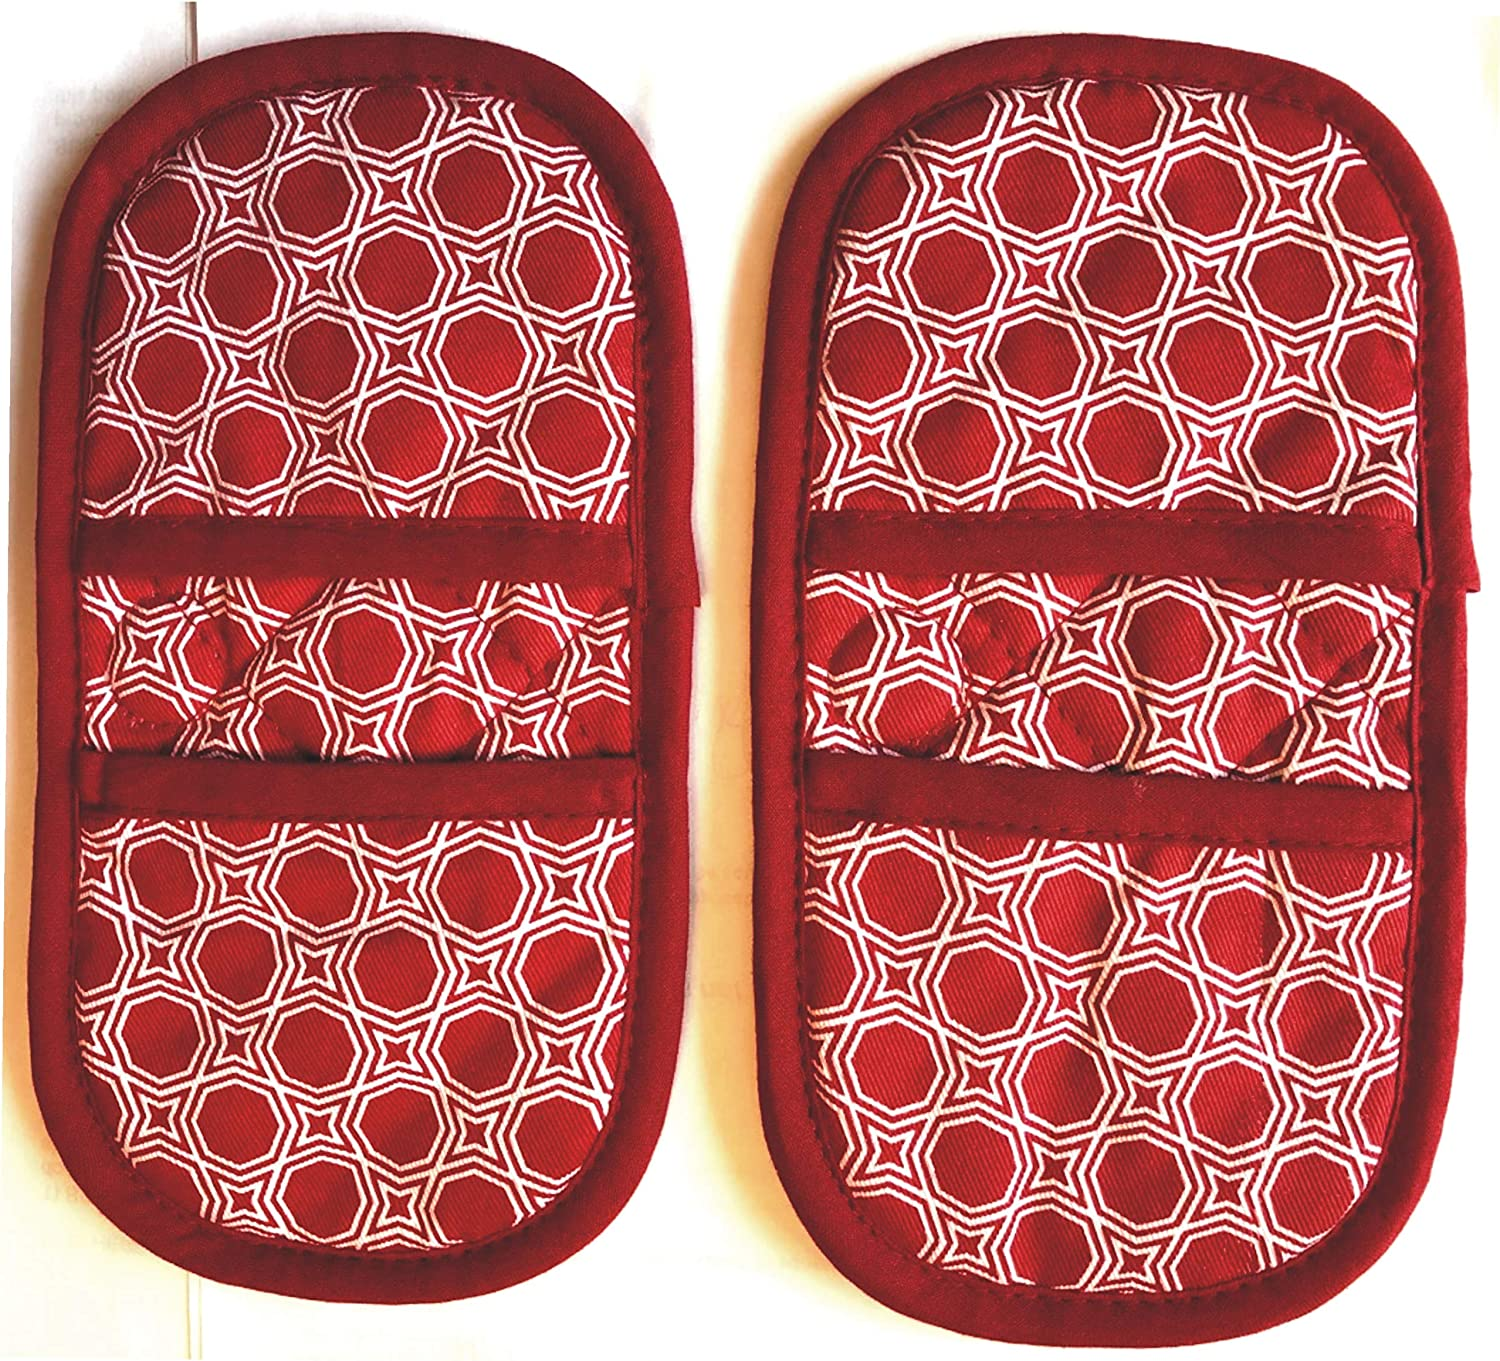 Mini Oven Mitts with Magnets.2pk Quilted Heat Resistant Red Cotton Fabric.Gloves/Pot Holder Safely Protects Hands from Hot Surfaces. Cooking Mitts ideal for handling Cookware, Bakeware, BBQ ,Microwave